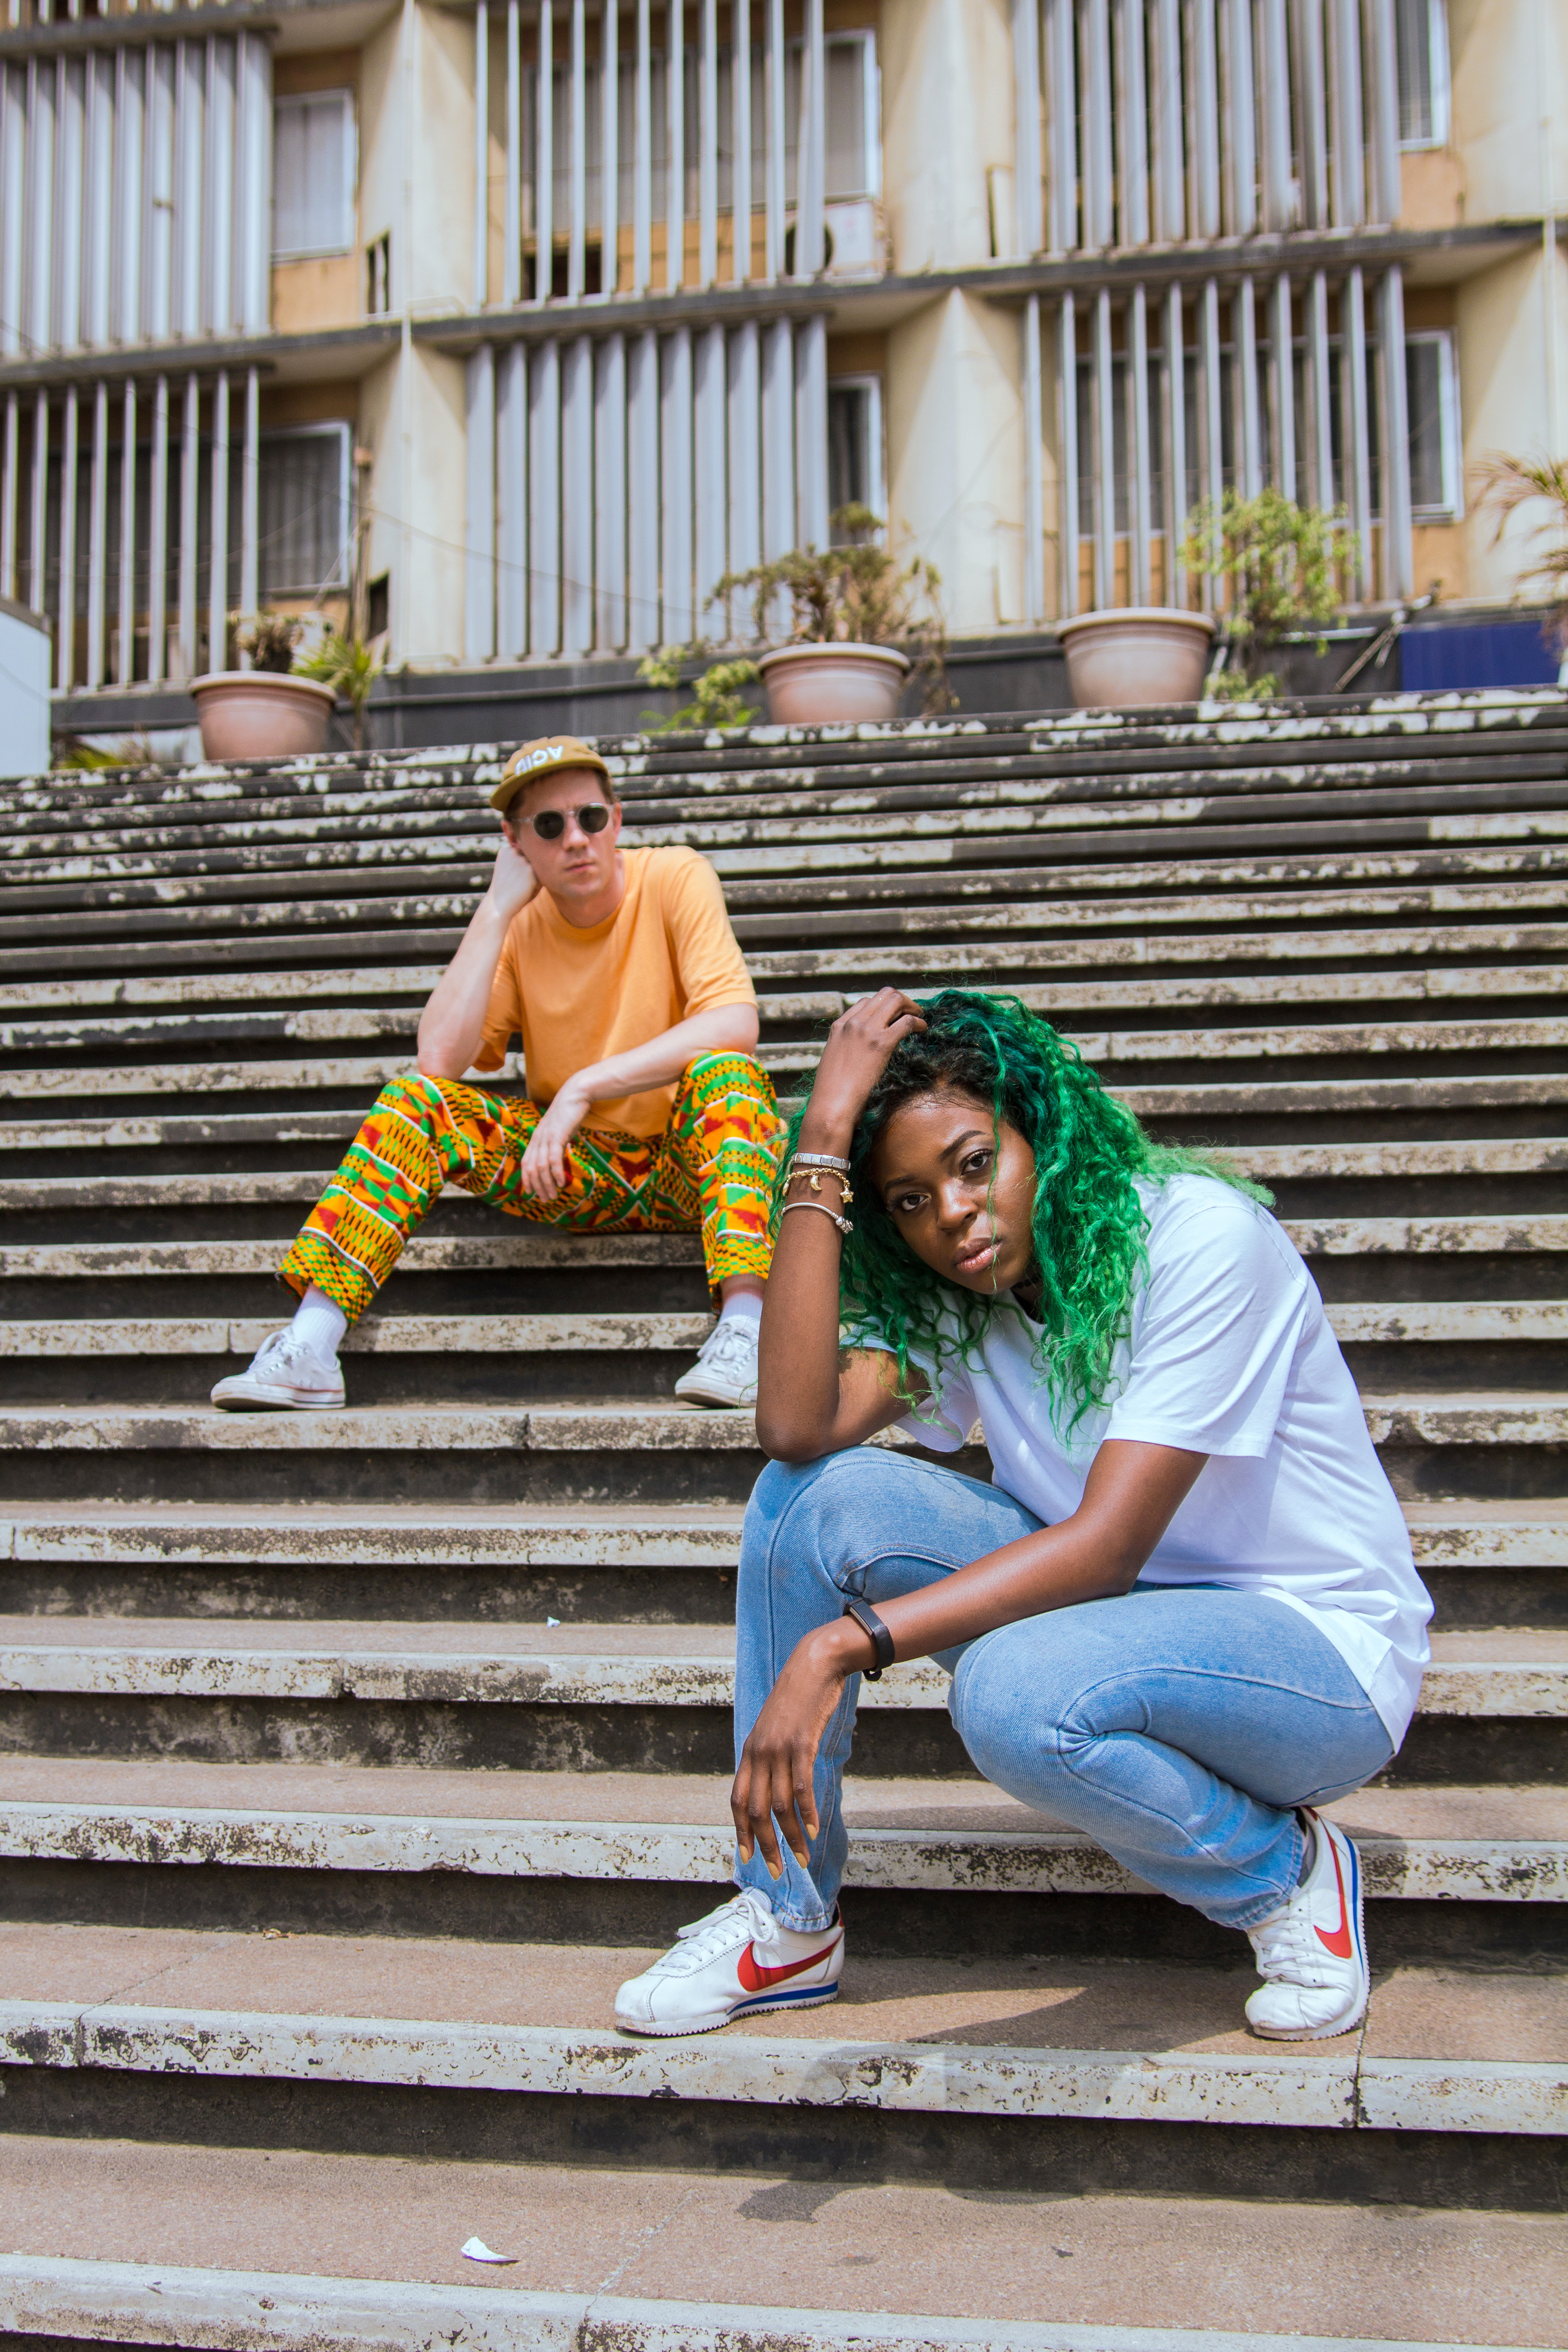 On Kah-lo Play Other's amp; 'ginger' Core Strengths Each To Riton